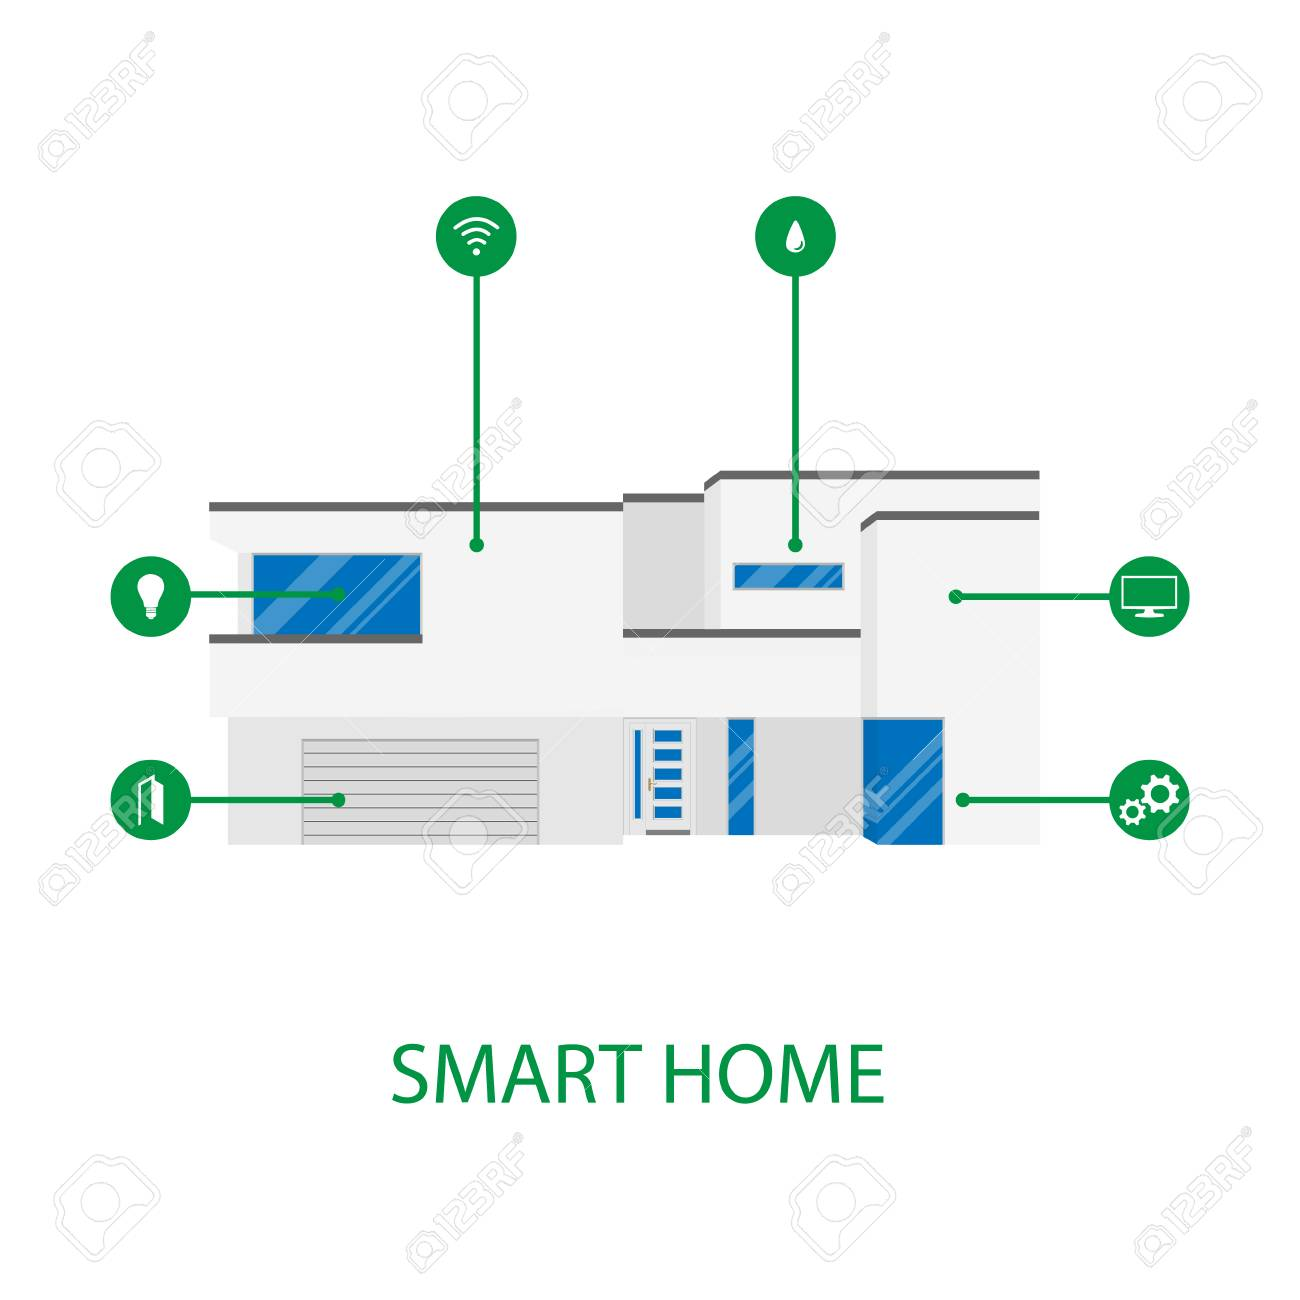 Mobile Phone Smart Home House App Application Concept Automation System Vector Illustration Stock